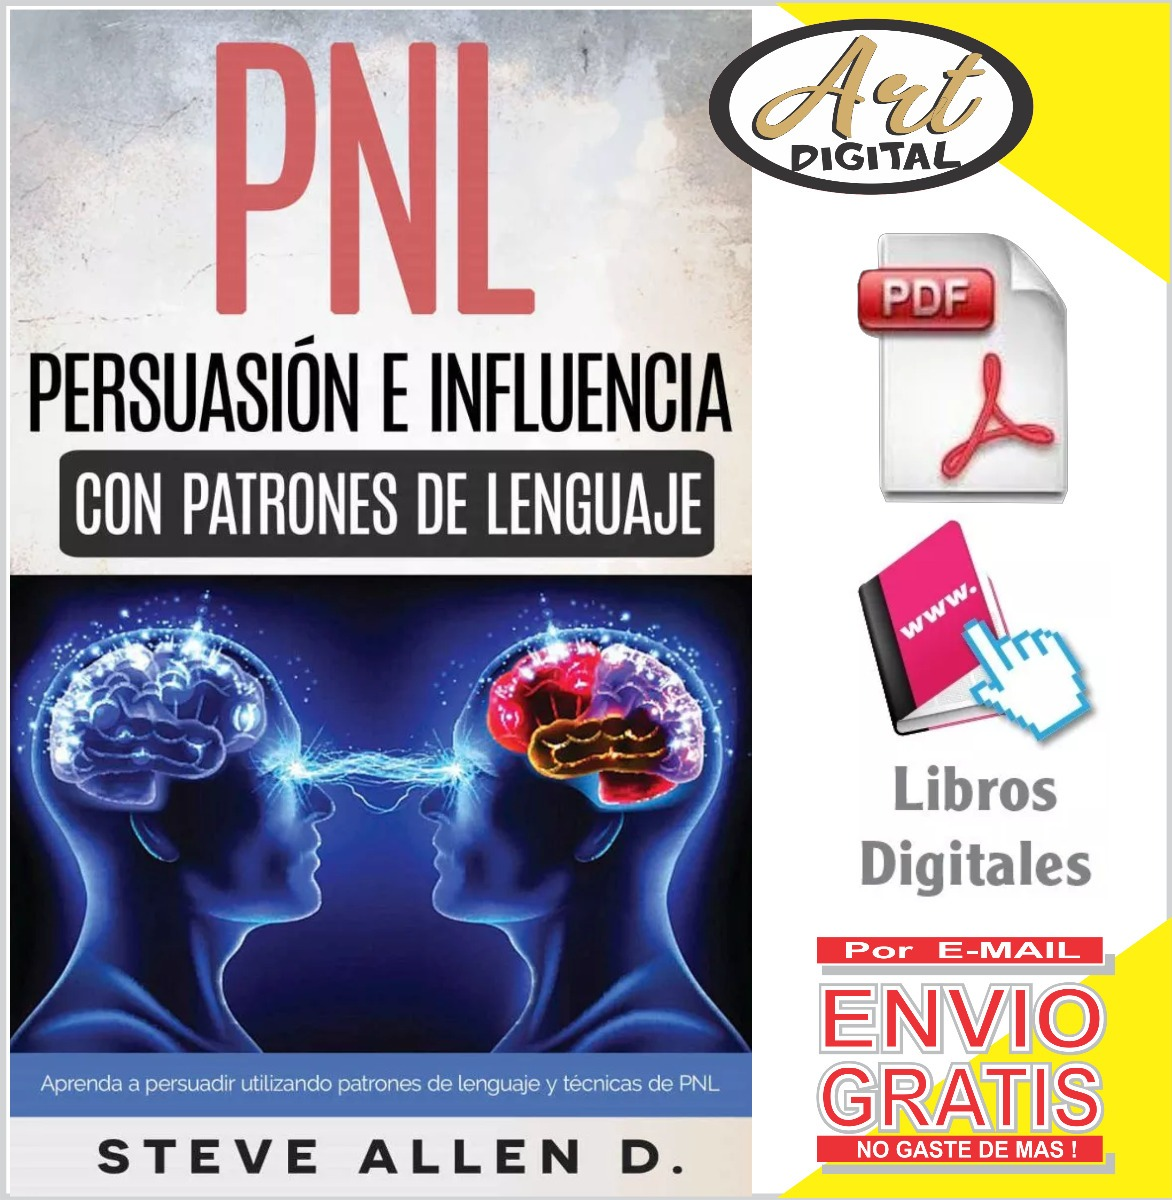 Libro Pnl Pdf Pnl Persuasion E Influencia Ebook Libro Digital